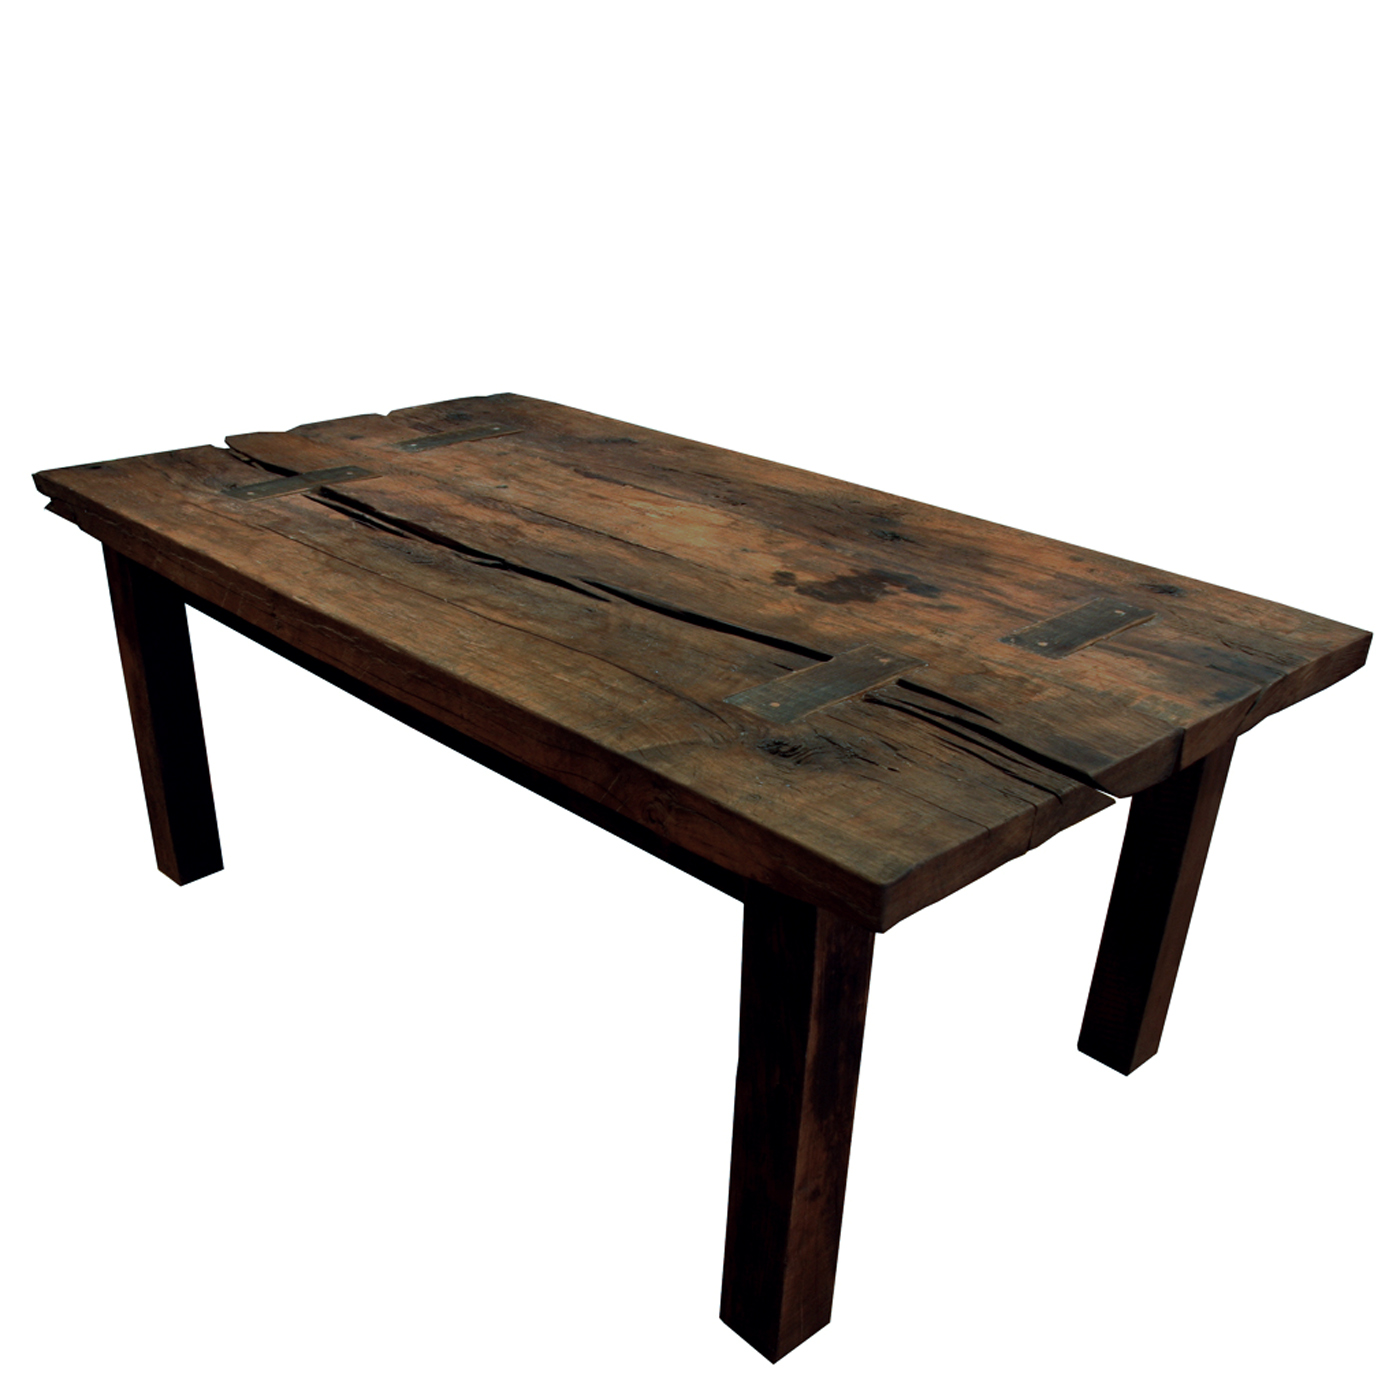 200 Year Old Reclaimed Oak Dining Table YIL1111 Ftable